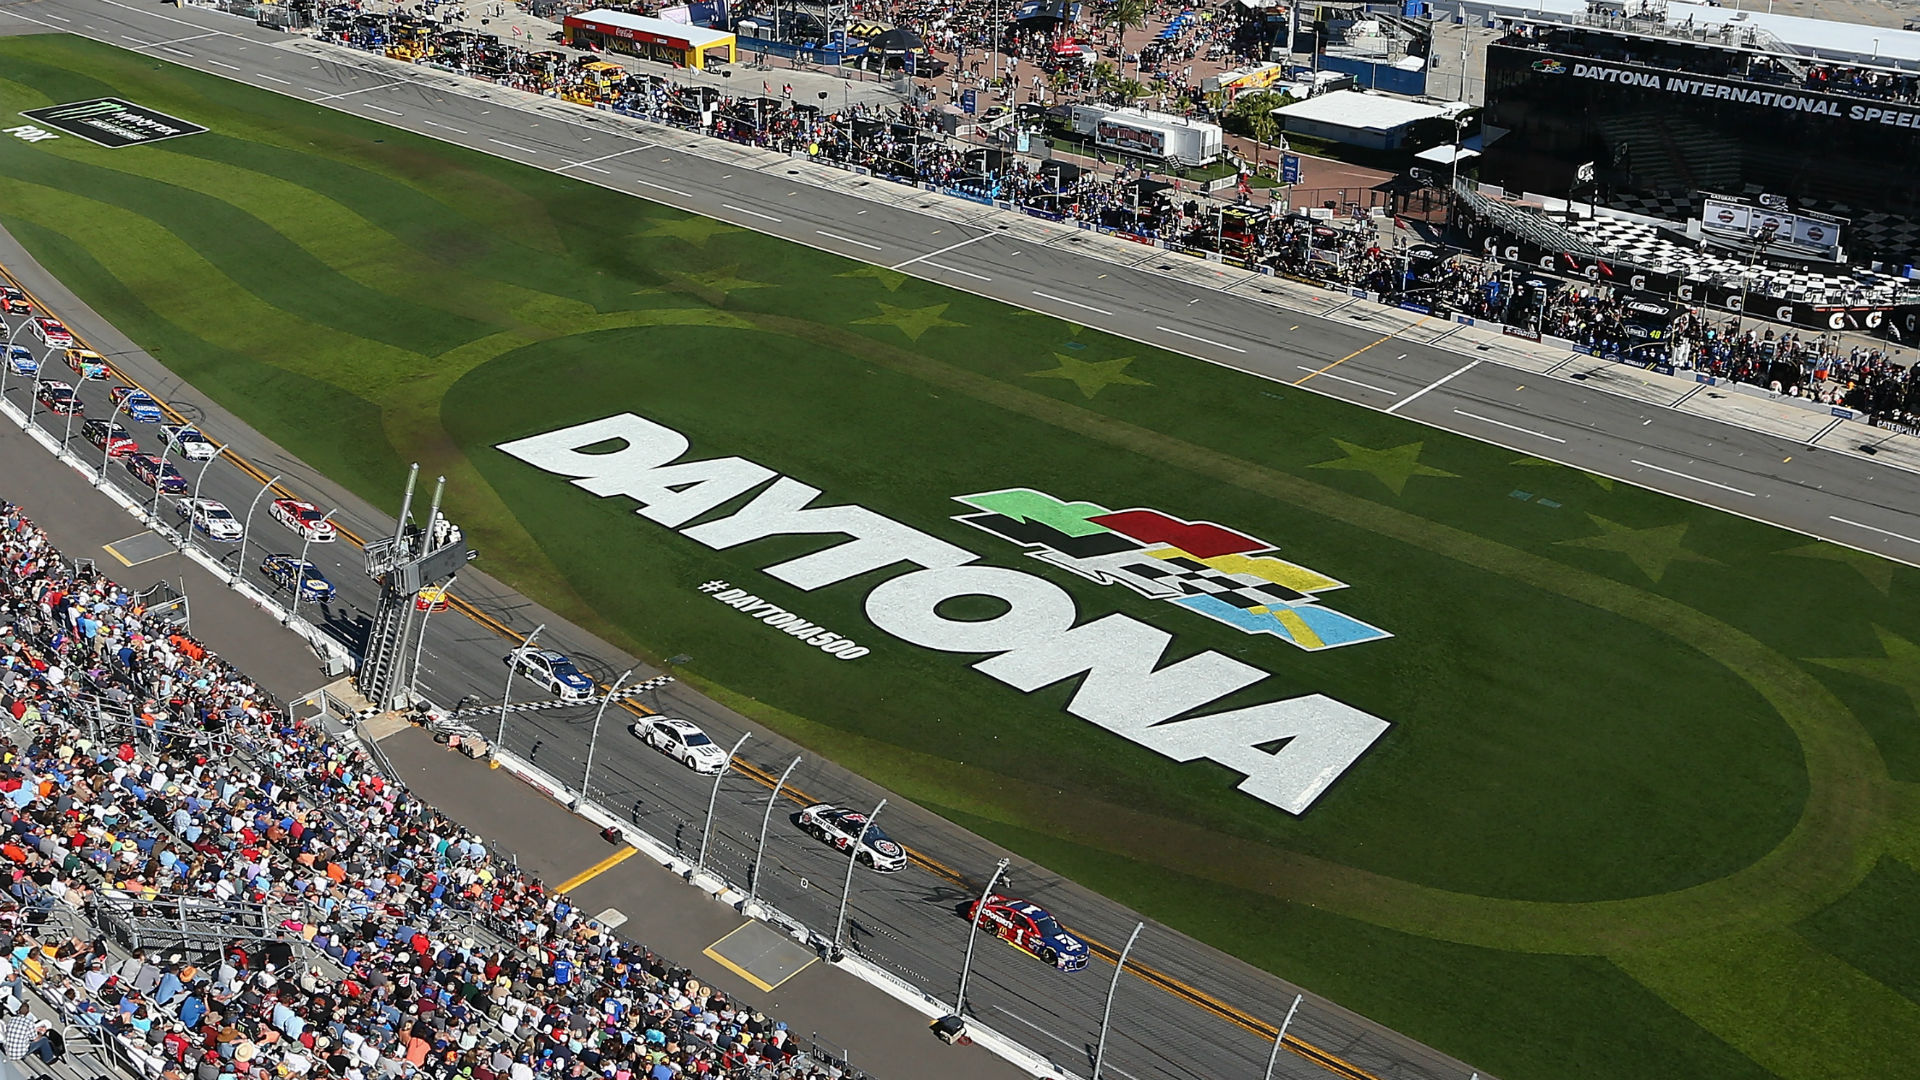 Daytona 500 starting lineup: Qualifying, Duel results set field for 2018 race